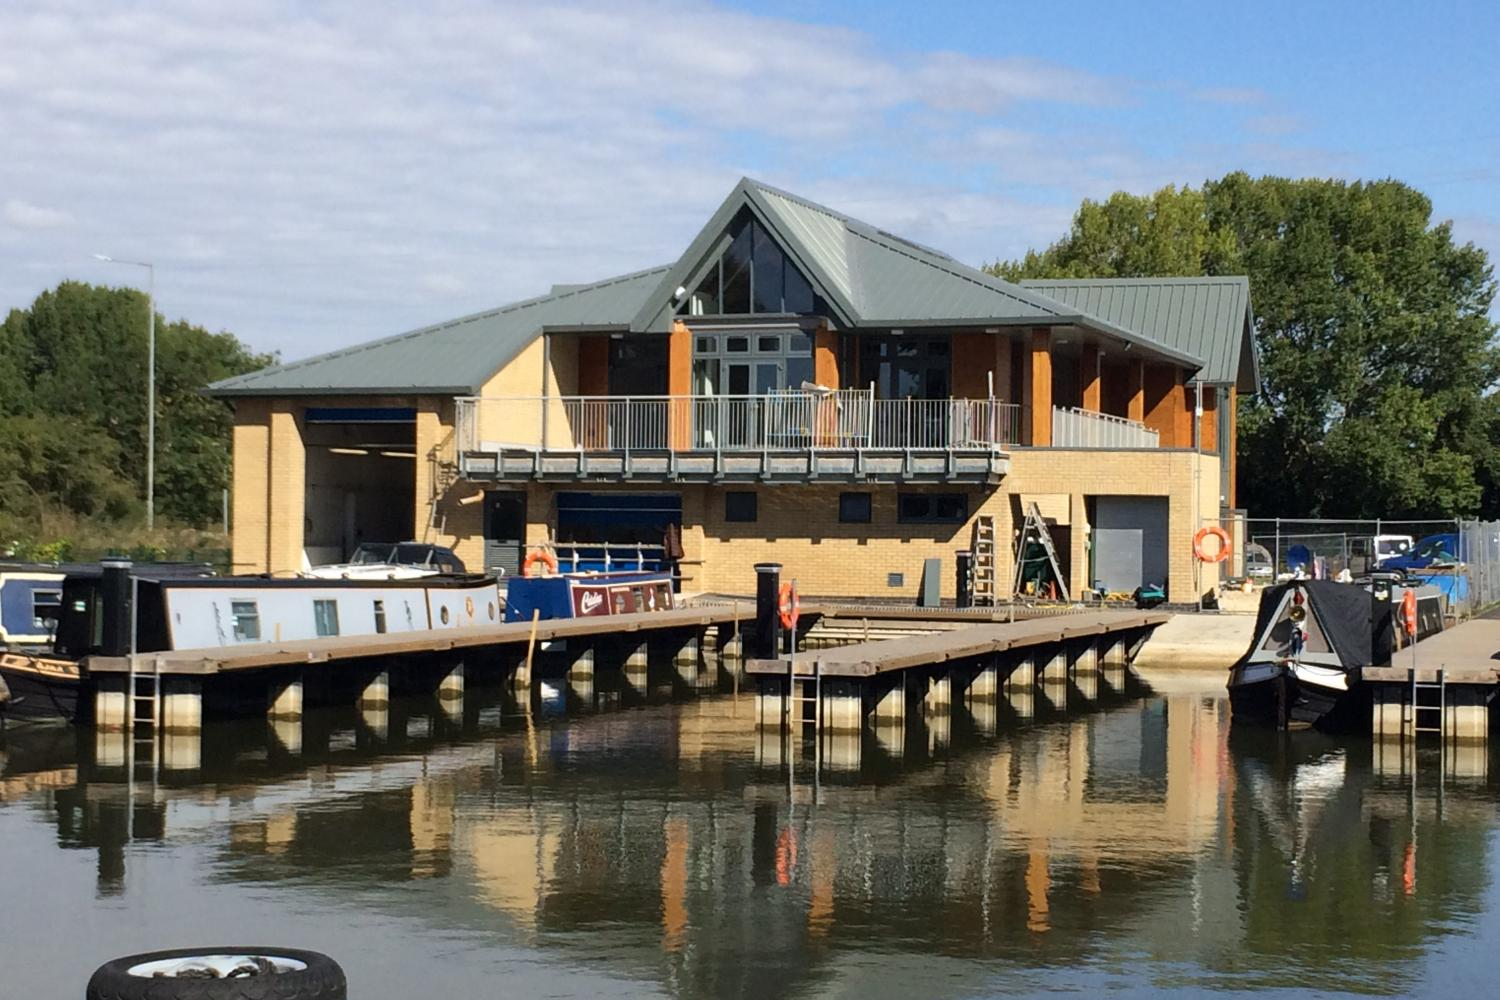 Aylesbury Canal Society Facilities Building